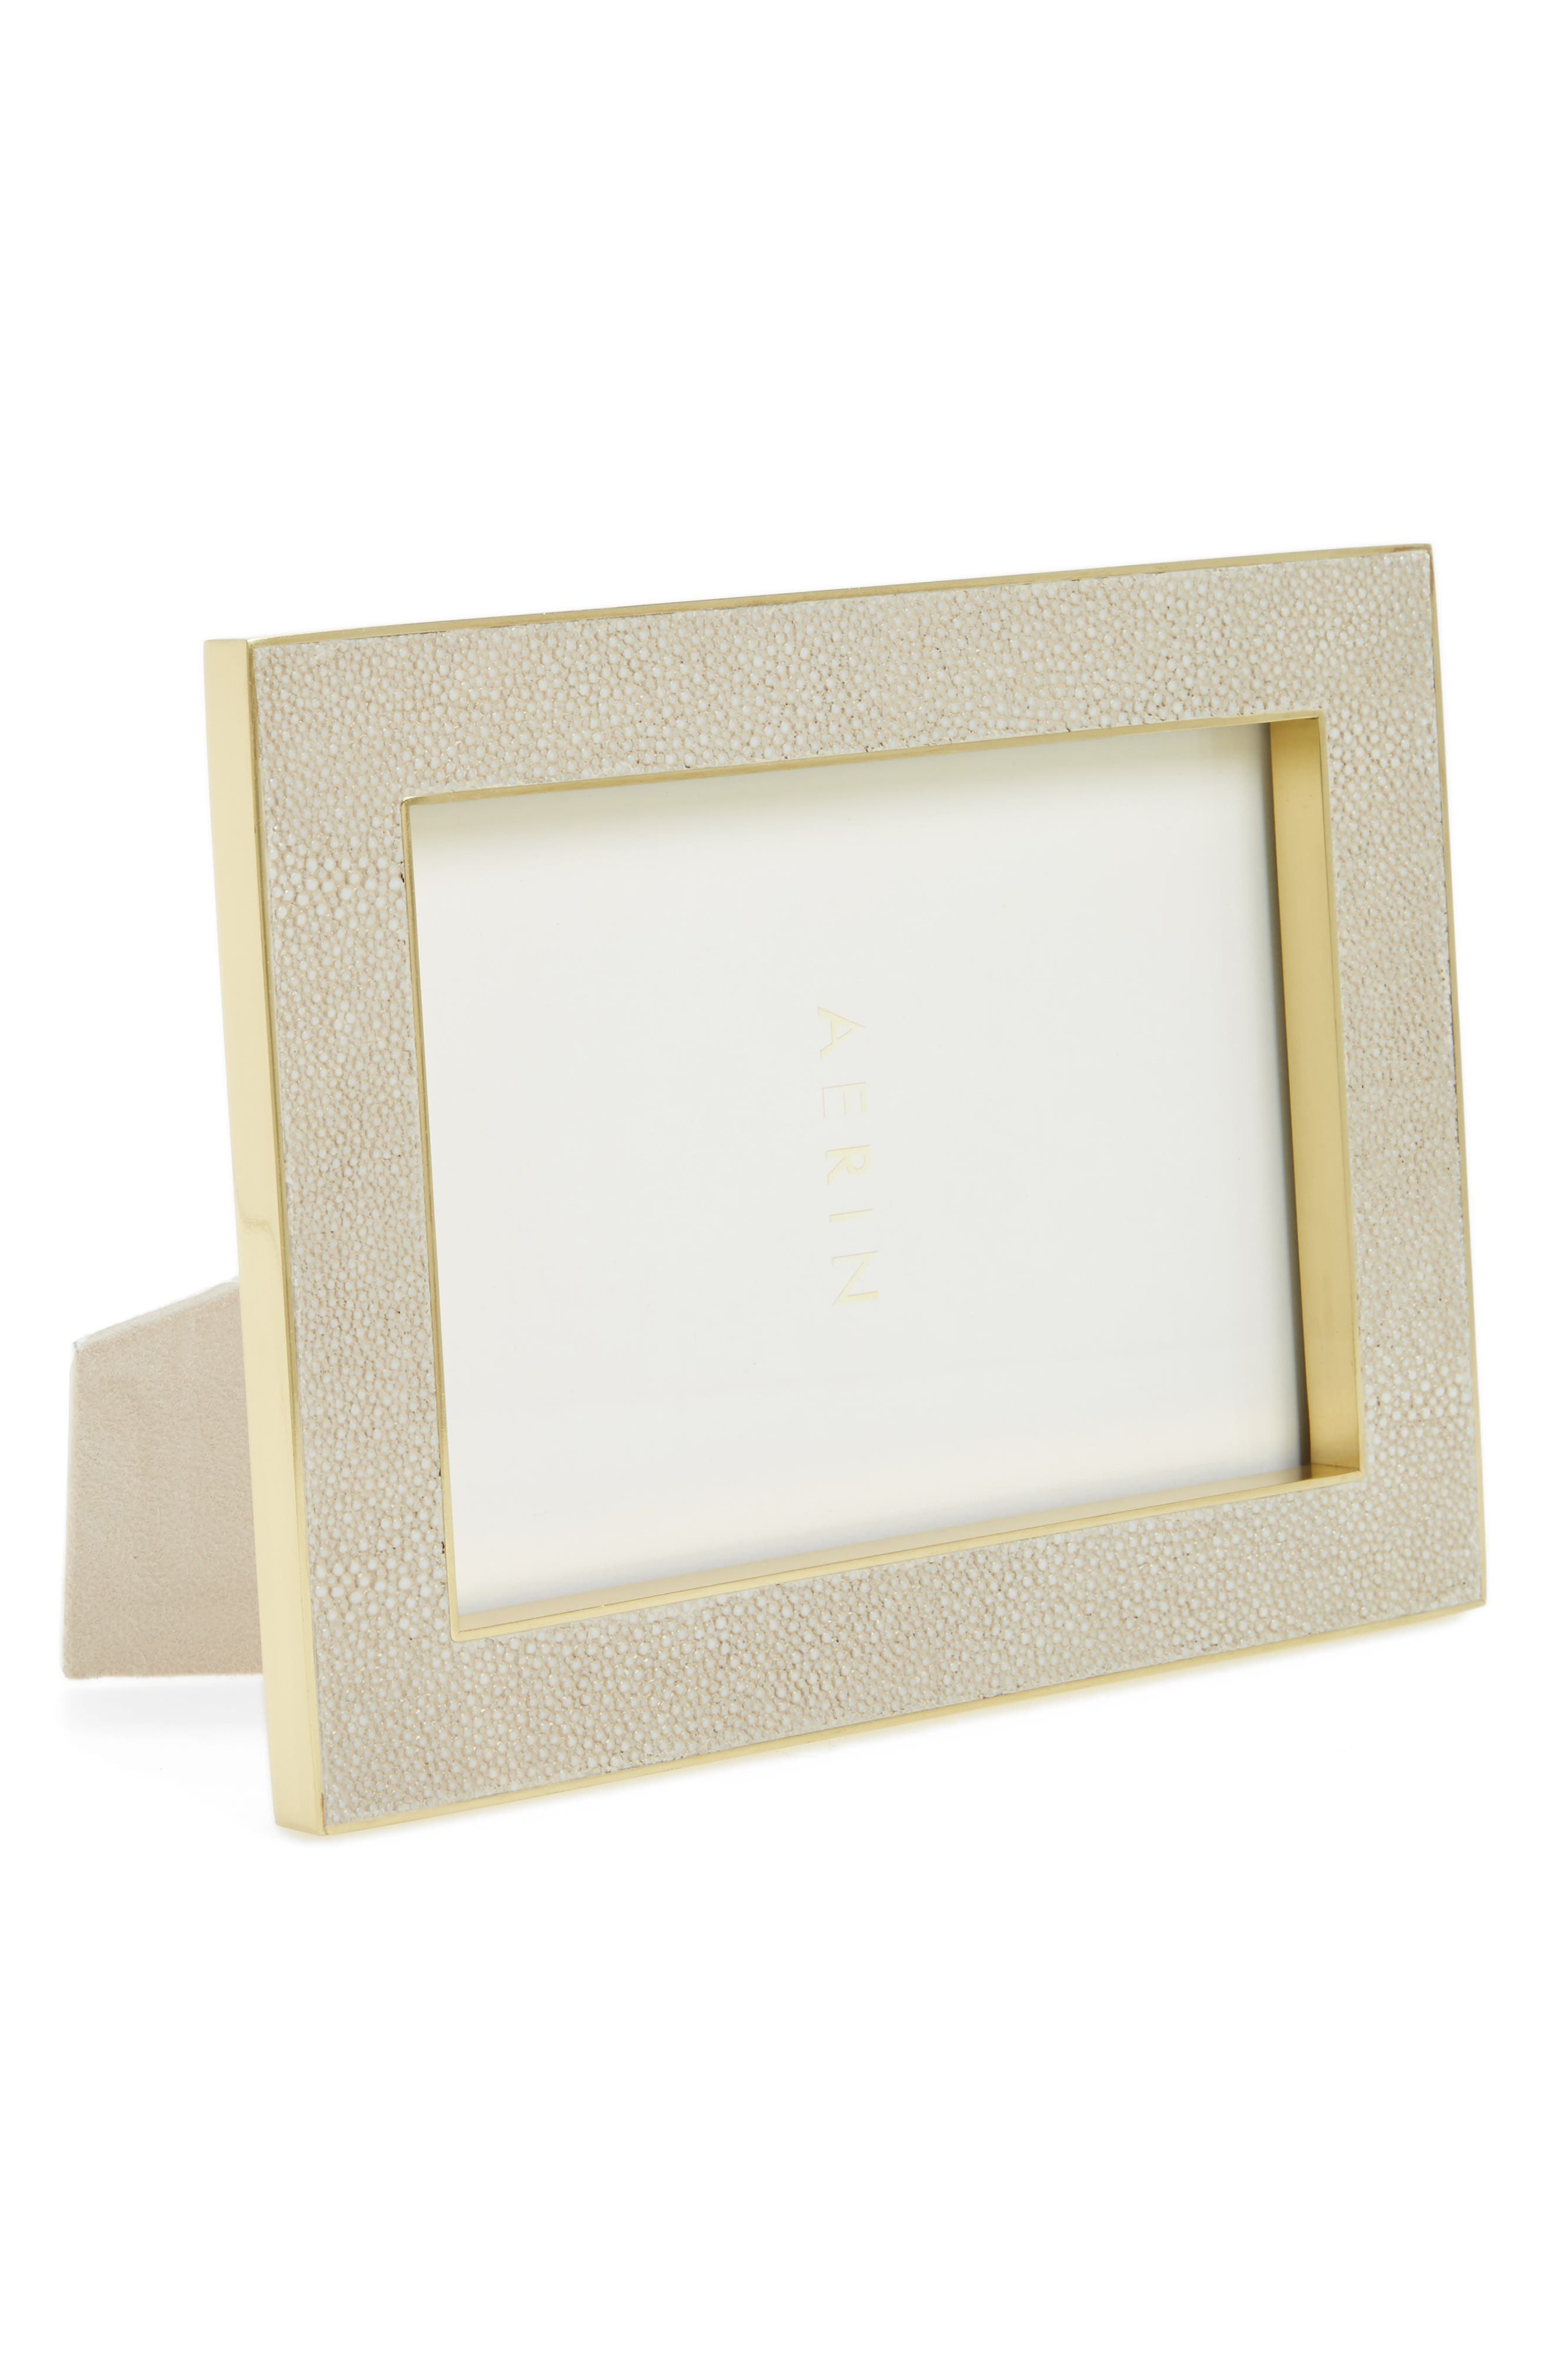 Shagreen Picture Frame,                             Main thumbnail 1, color,                             Wheat